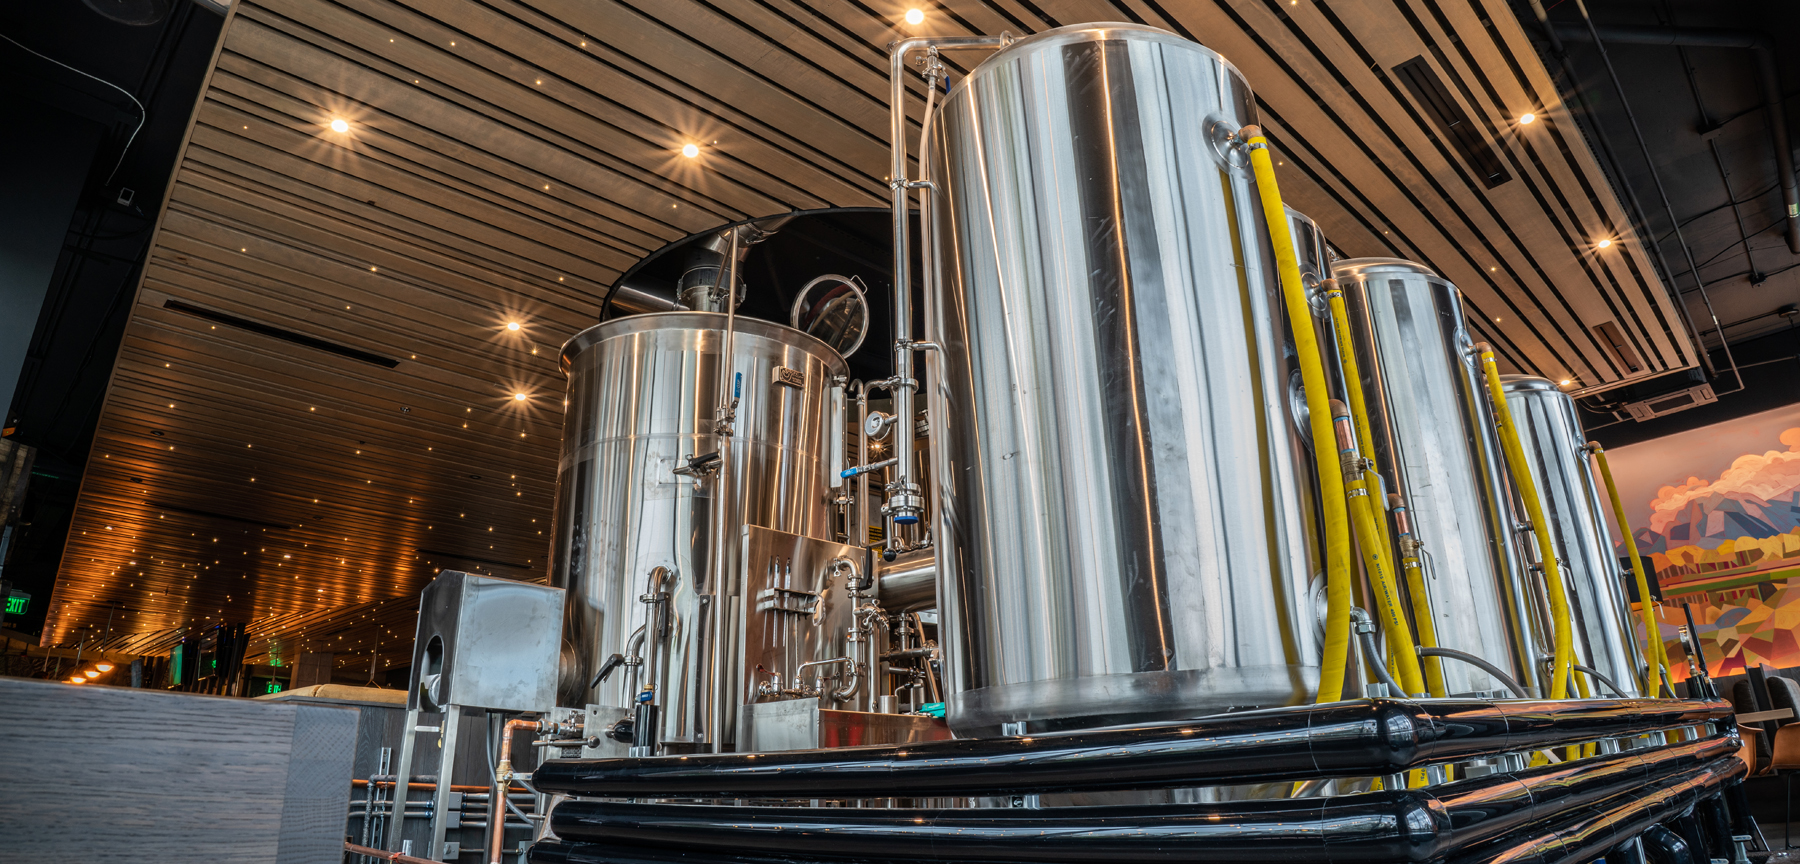 Great Divide Brewery & Roadhouse 5-barrel brewery system